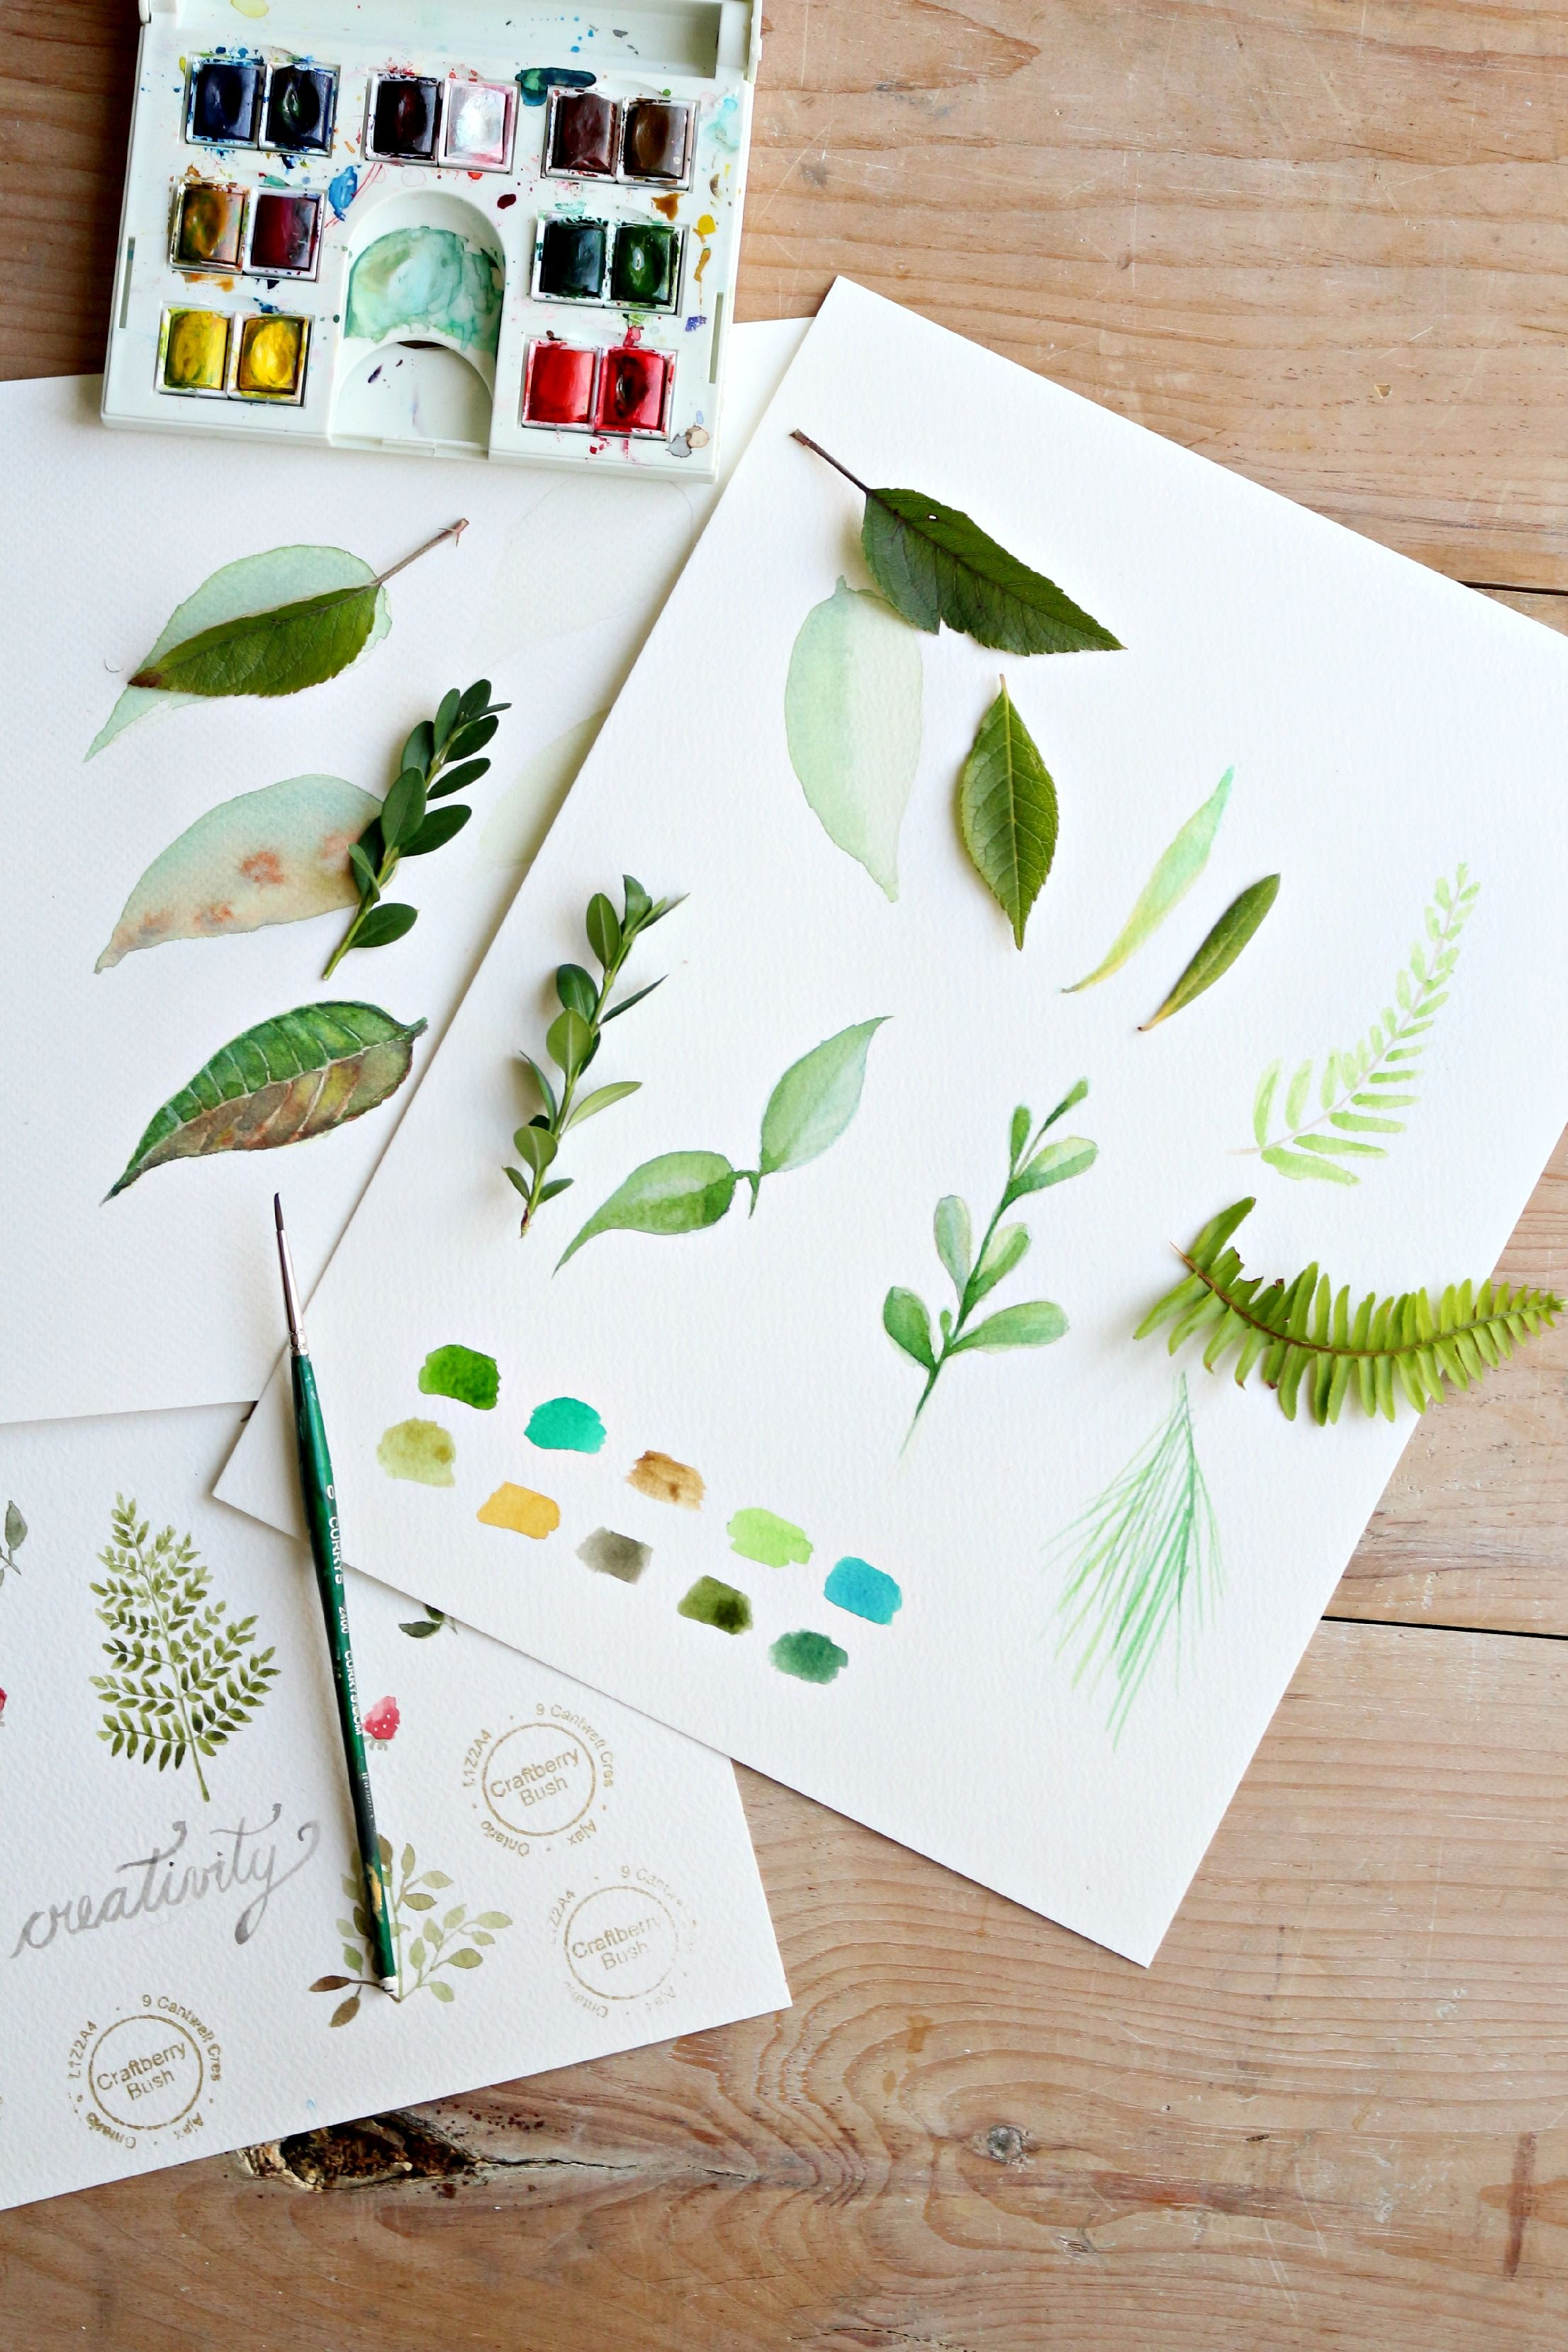 How To Paint A Basic Leaf With Watercolors Watercolour Tutorials